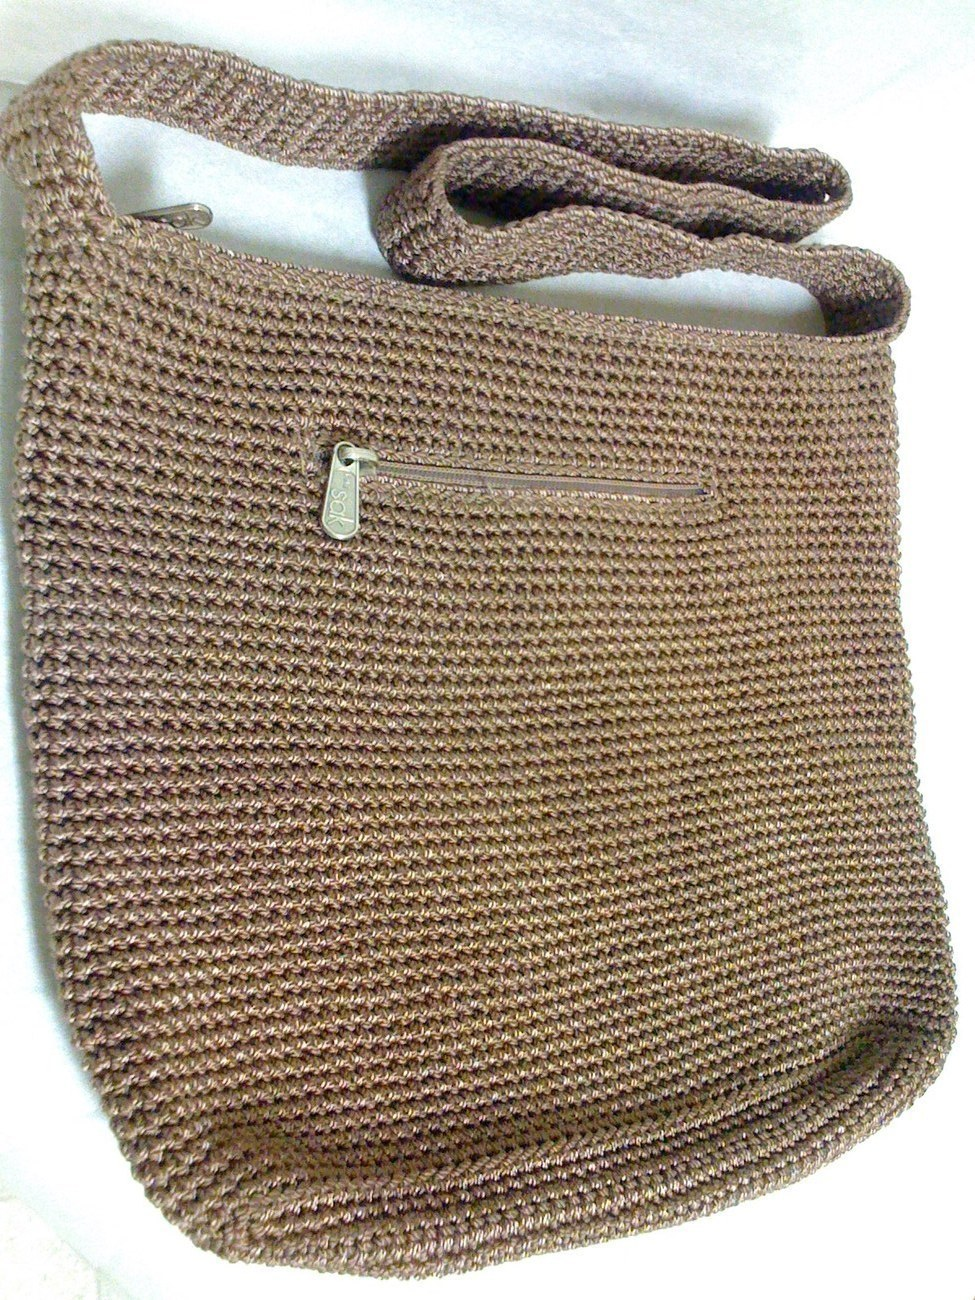 Sak Crochet Bag : THE SAK CLASSIC TAN CROCHET BAG Large - Handbags & Purses